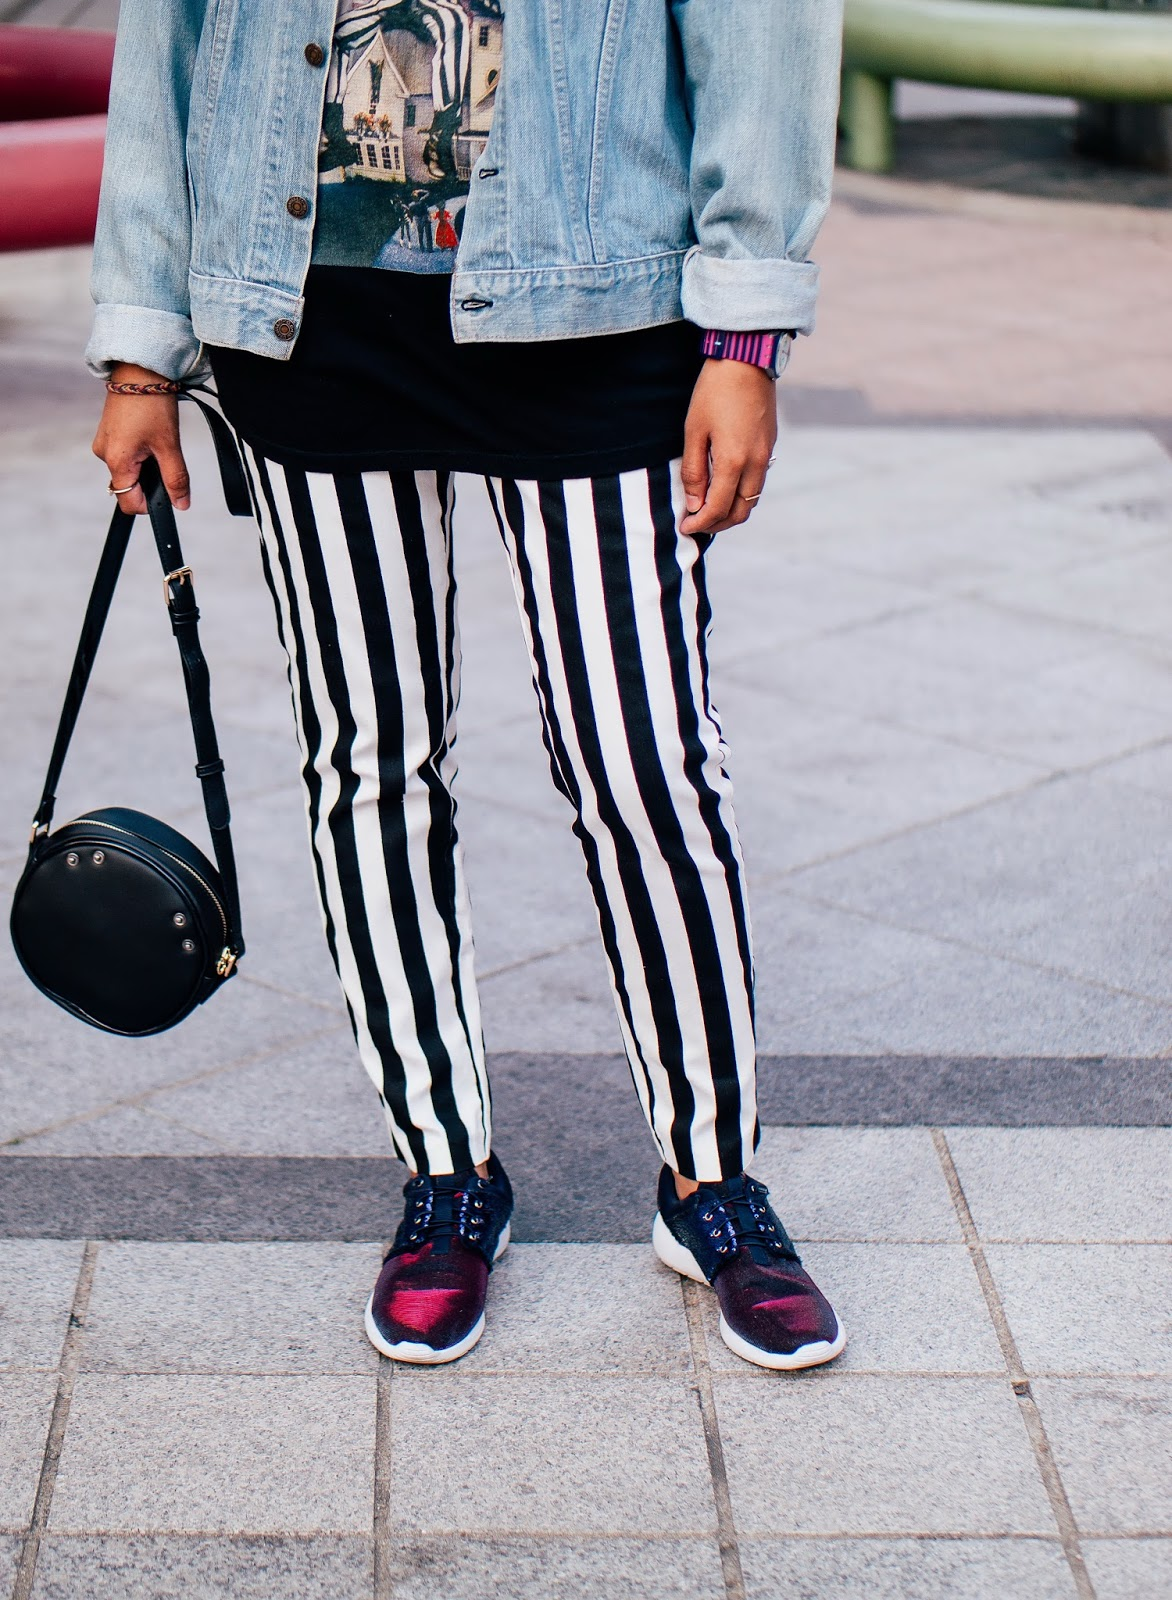 Striped black and white pants like Beetlejuice